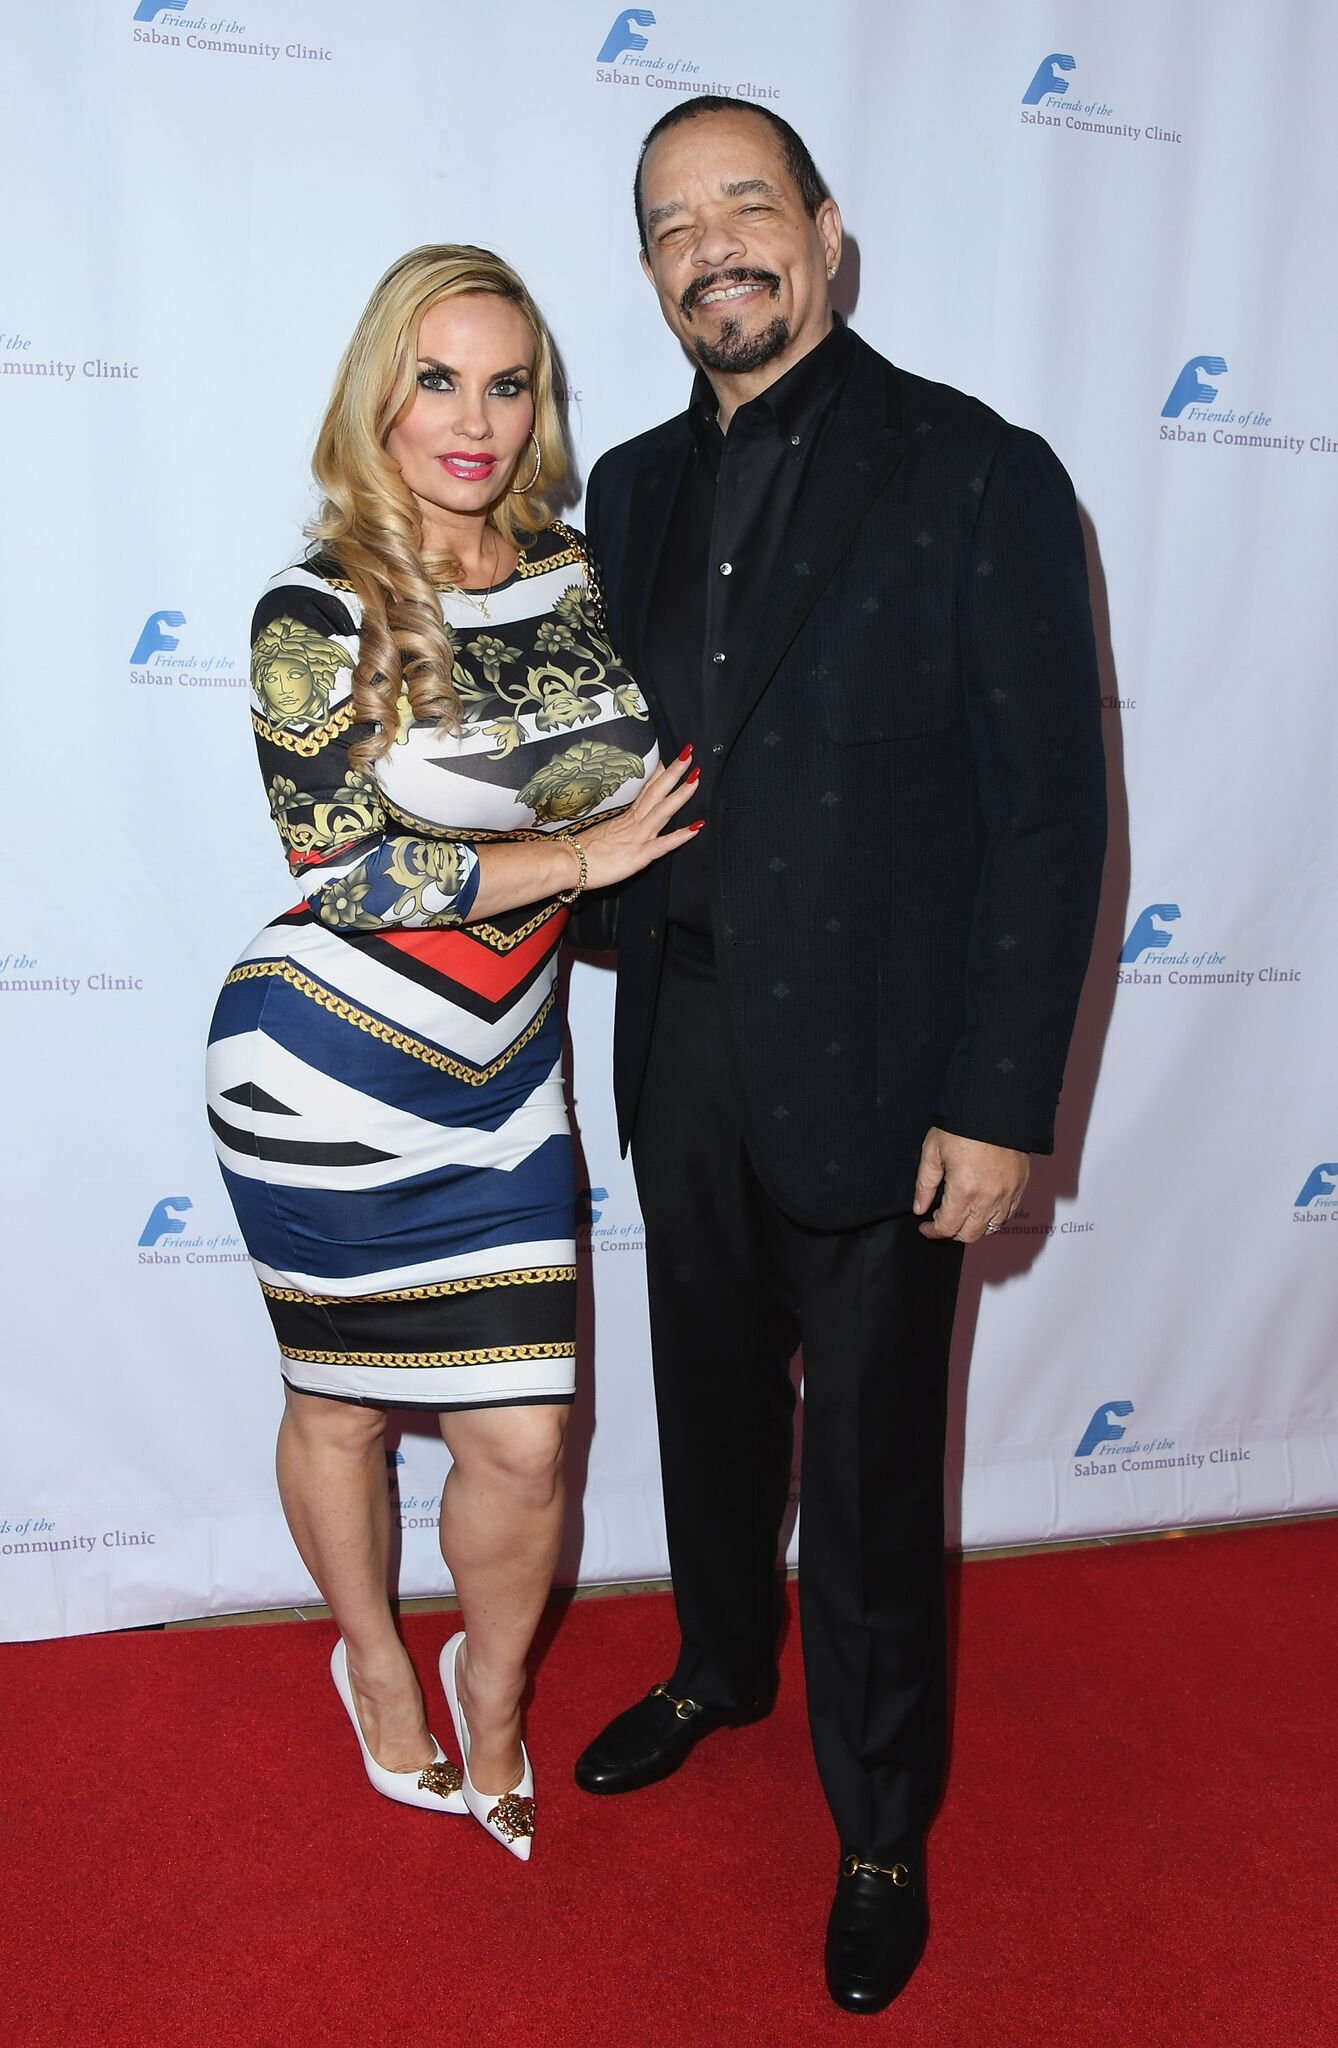 Coco Austin and Ice-T attend Friends Of The Saban Community Clinic's 42nd Annual Gala    Getty Images